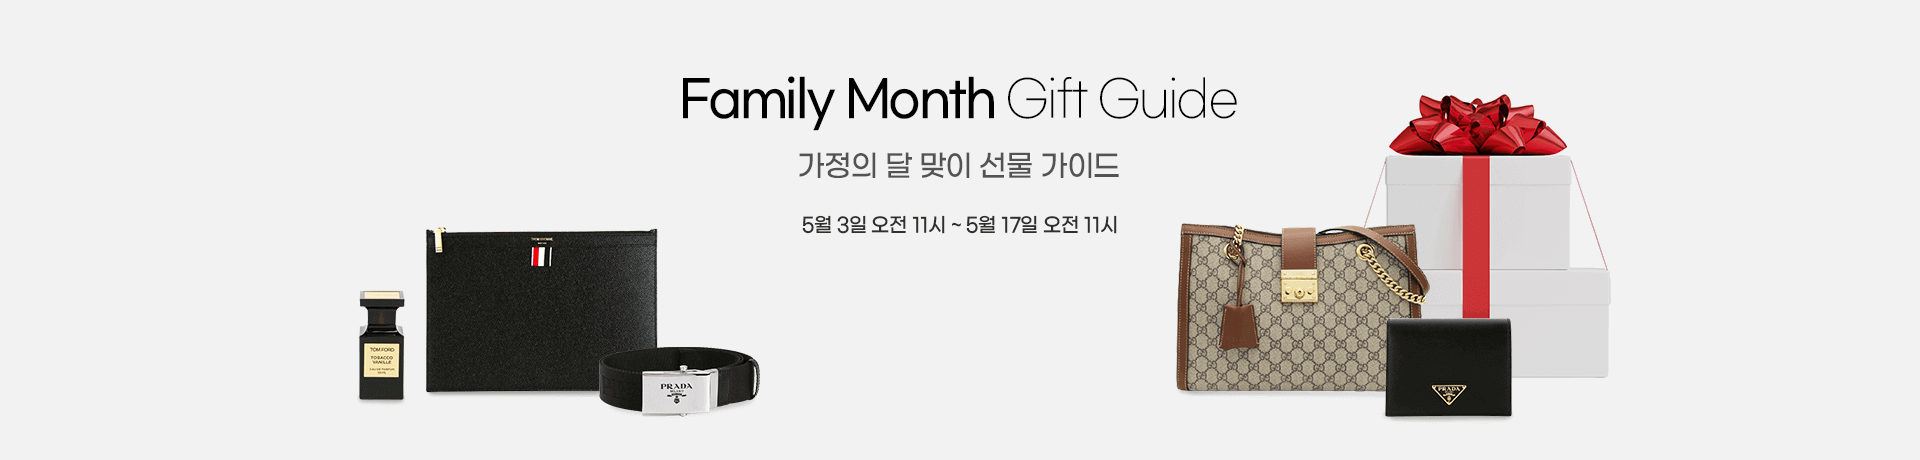 210503_sy_family-month-gift-guide_pc_f2f2f2